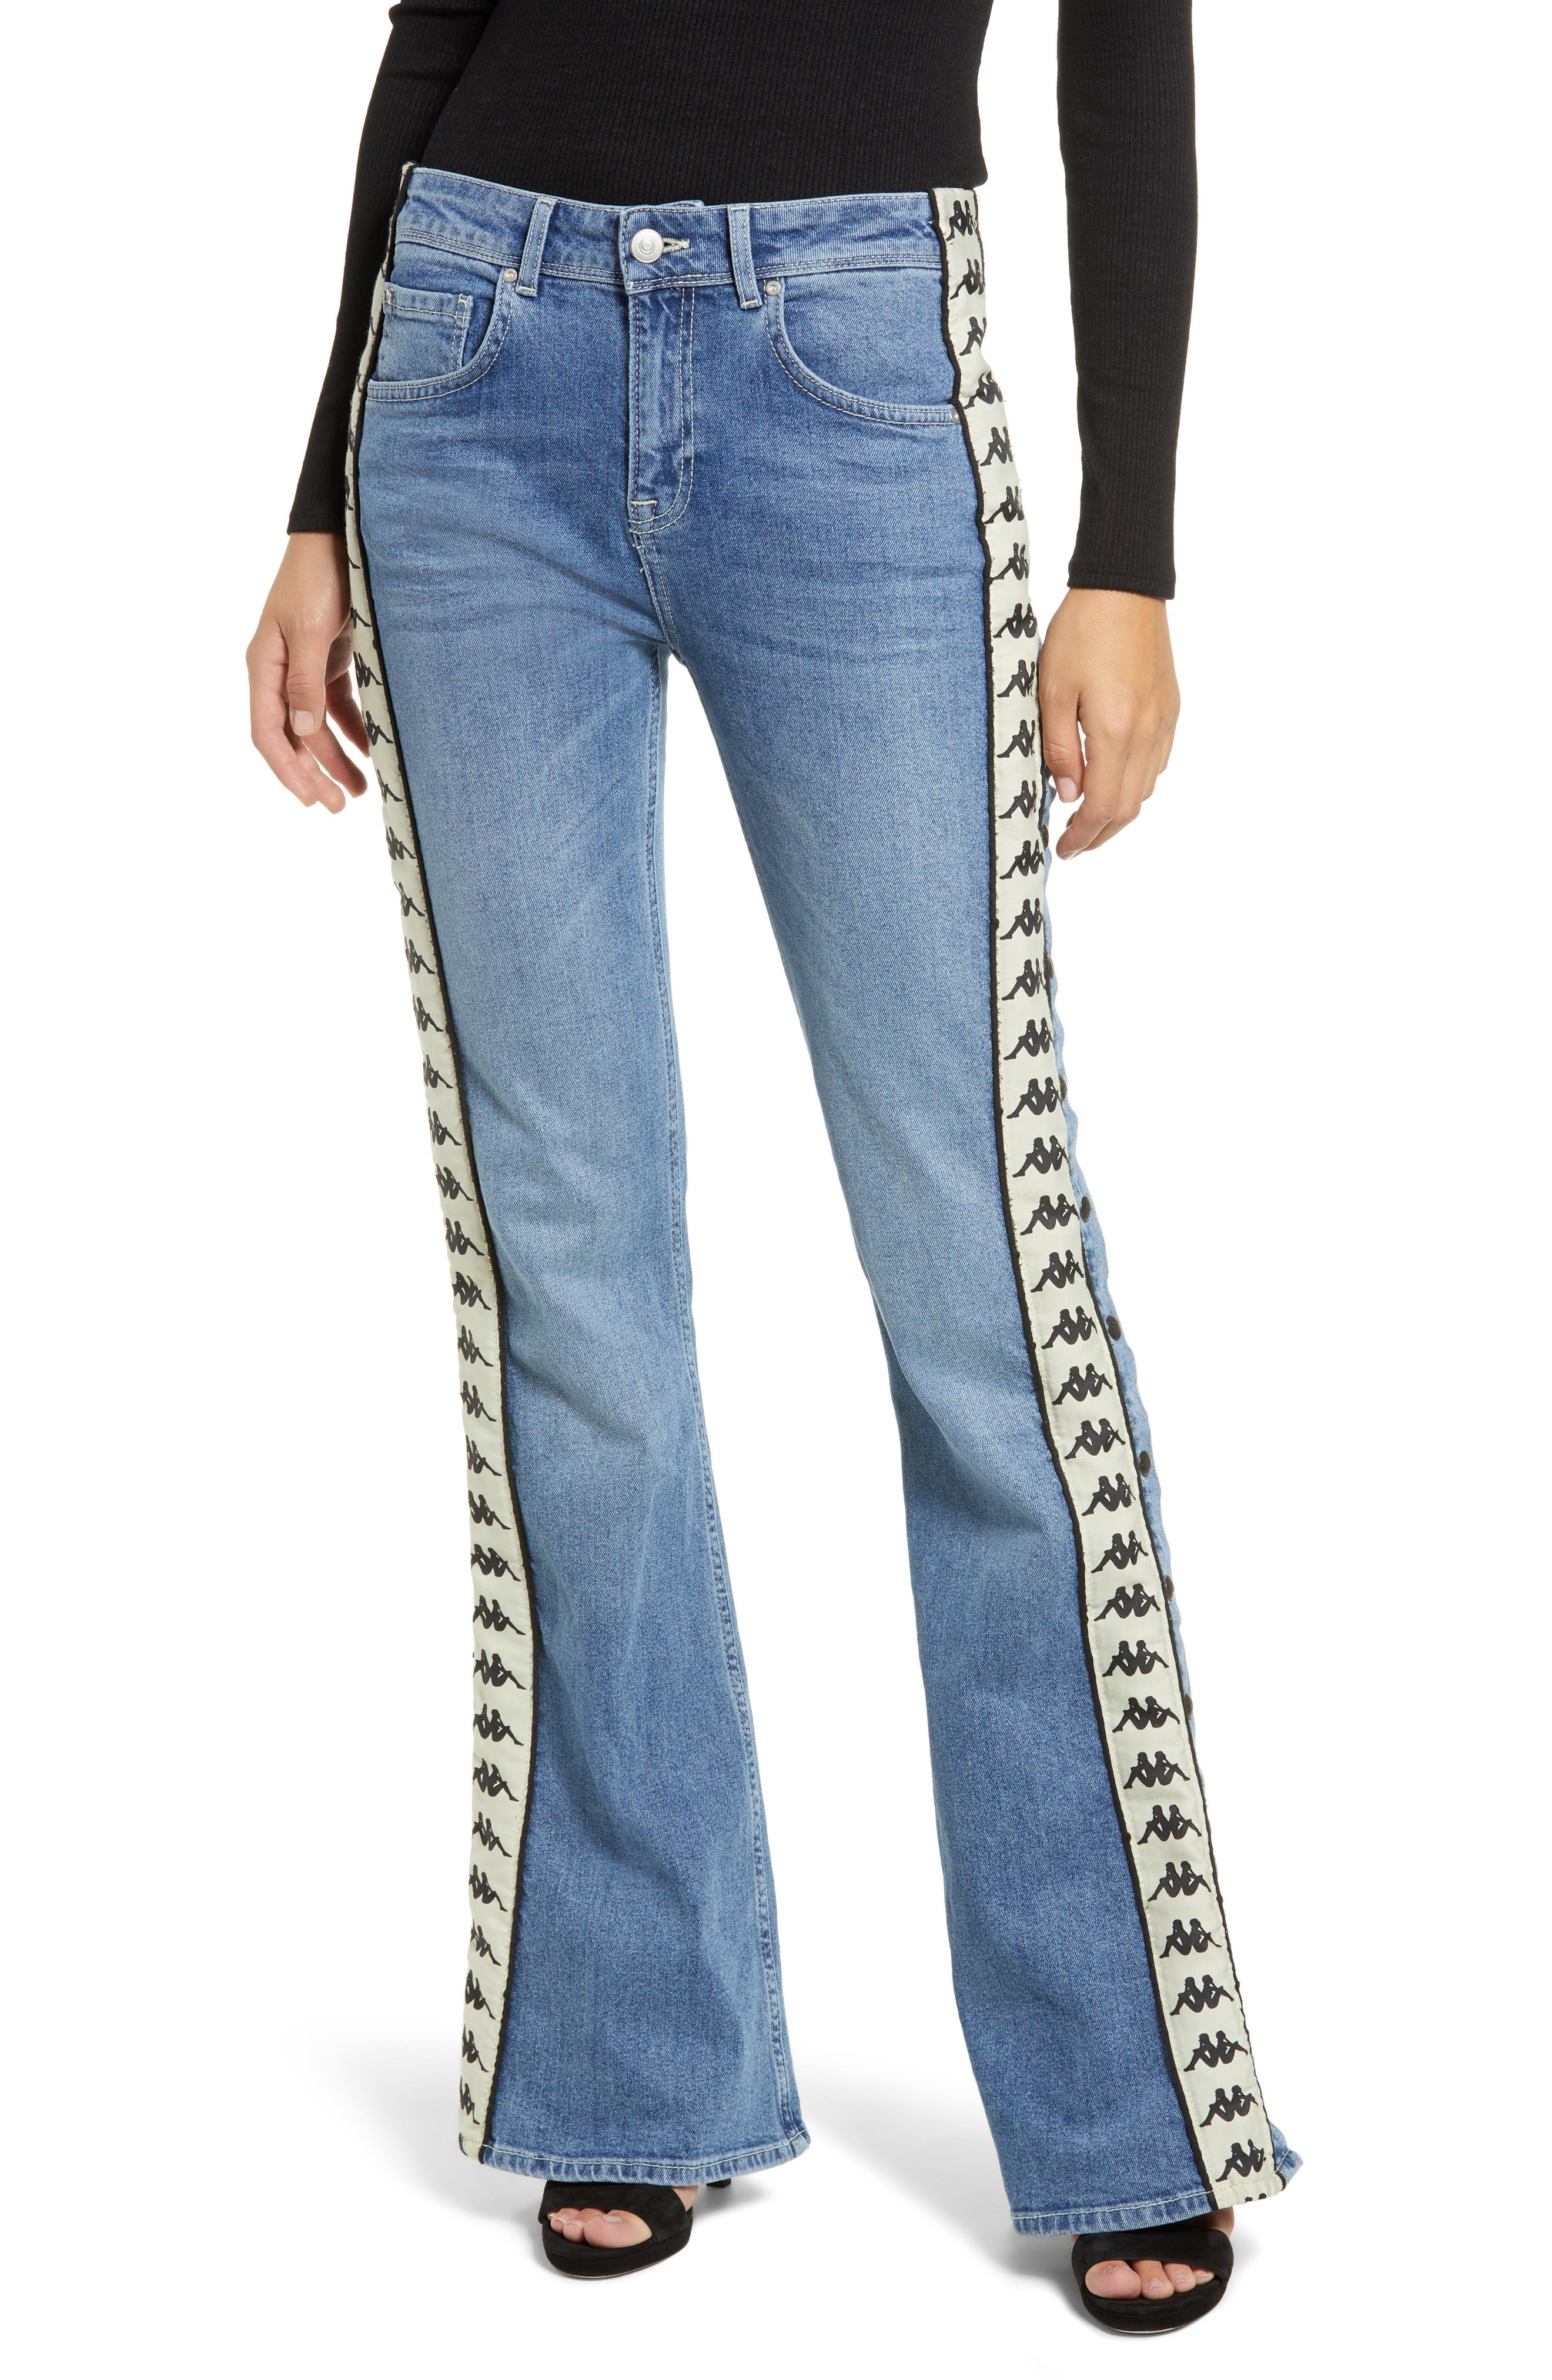 Authentic Brigit Flare Leg Jeans,                         Main,                         color, LIGHT COBALT/ BEIGE